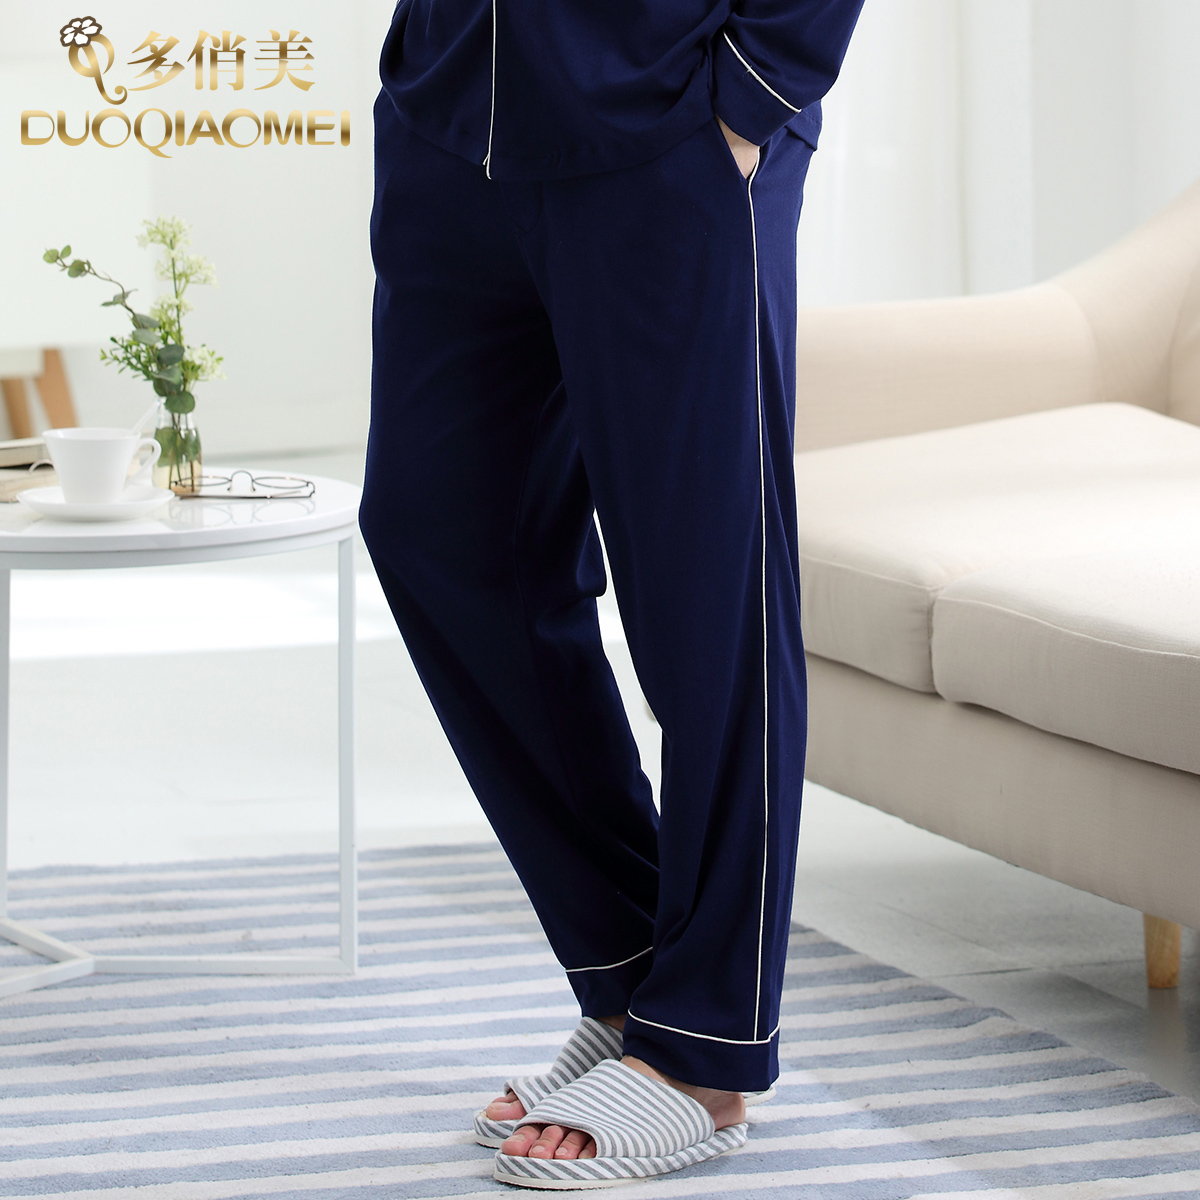 Autumn spring and autumn cotton men's home pants pajama pants for men home pants loose big yards full of cotton in autumn and winter